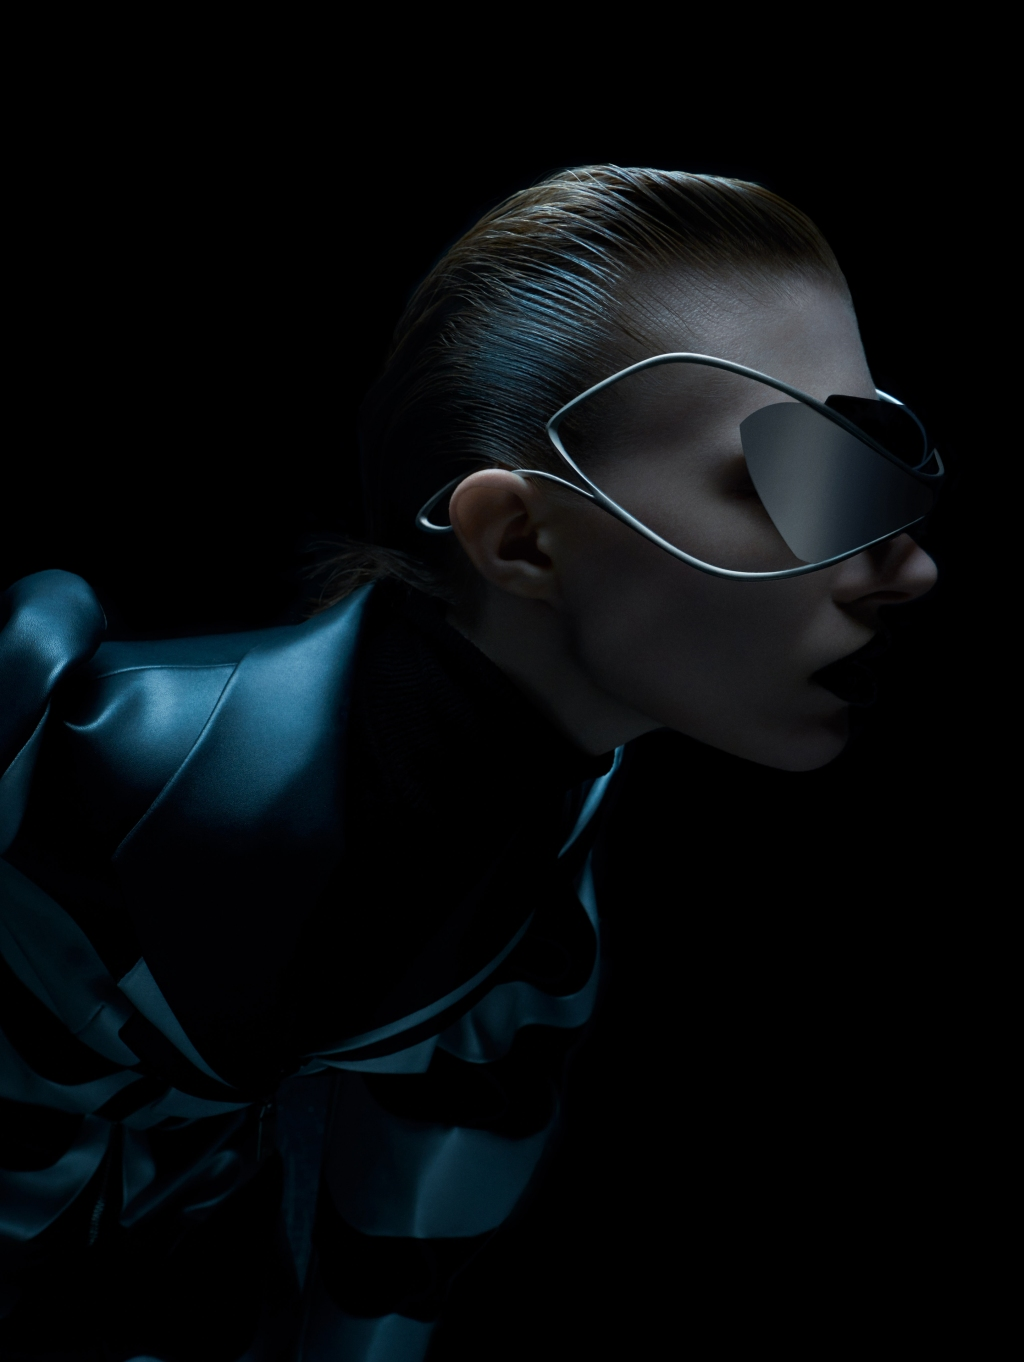 Zaha Hadid Design unveils collaboration with Chinese eyewear brand The Owner